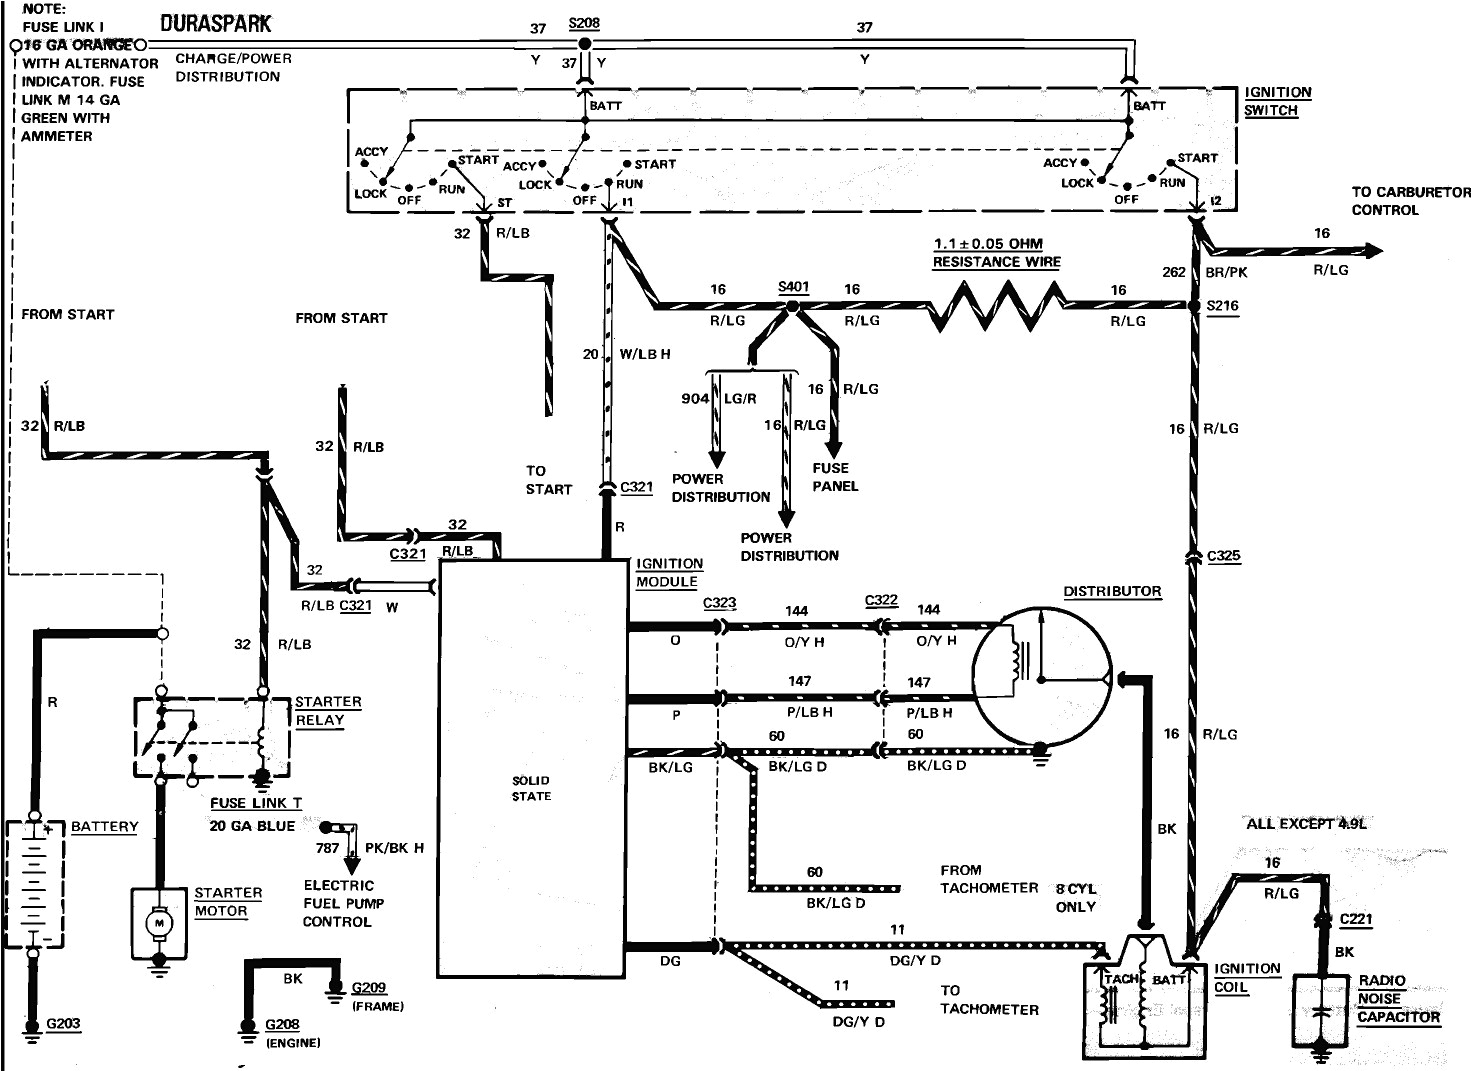 ford f 250 wiring diagram wiring diagram show wiring diagram for ford f350 starter relay wiring diagram for ford f250